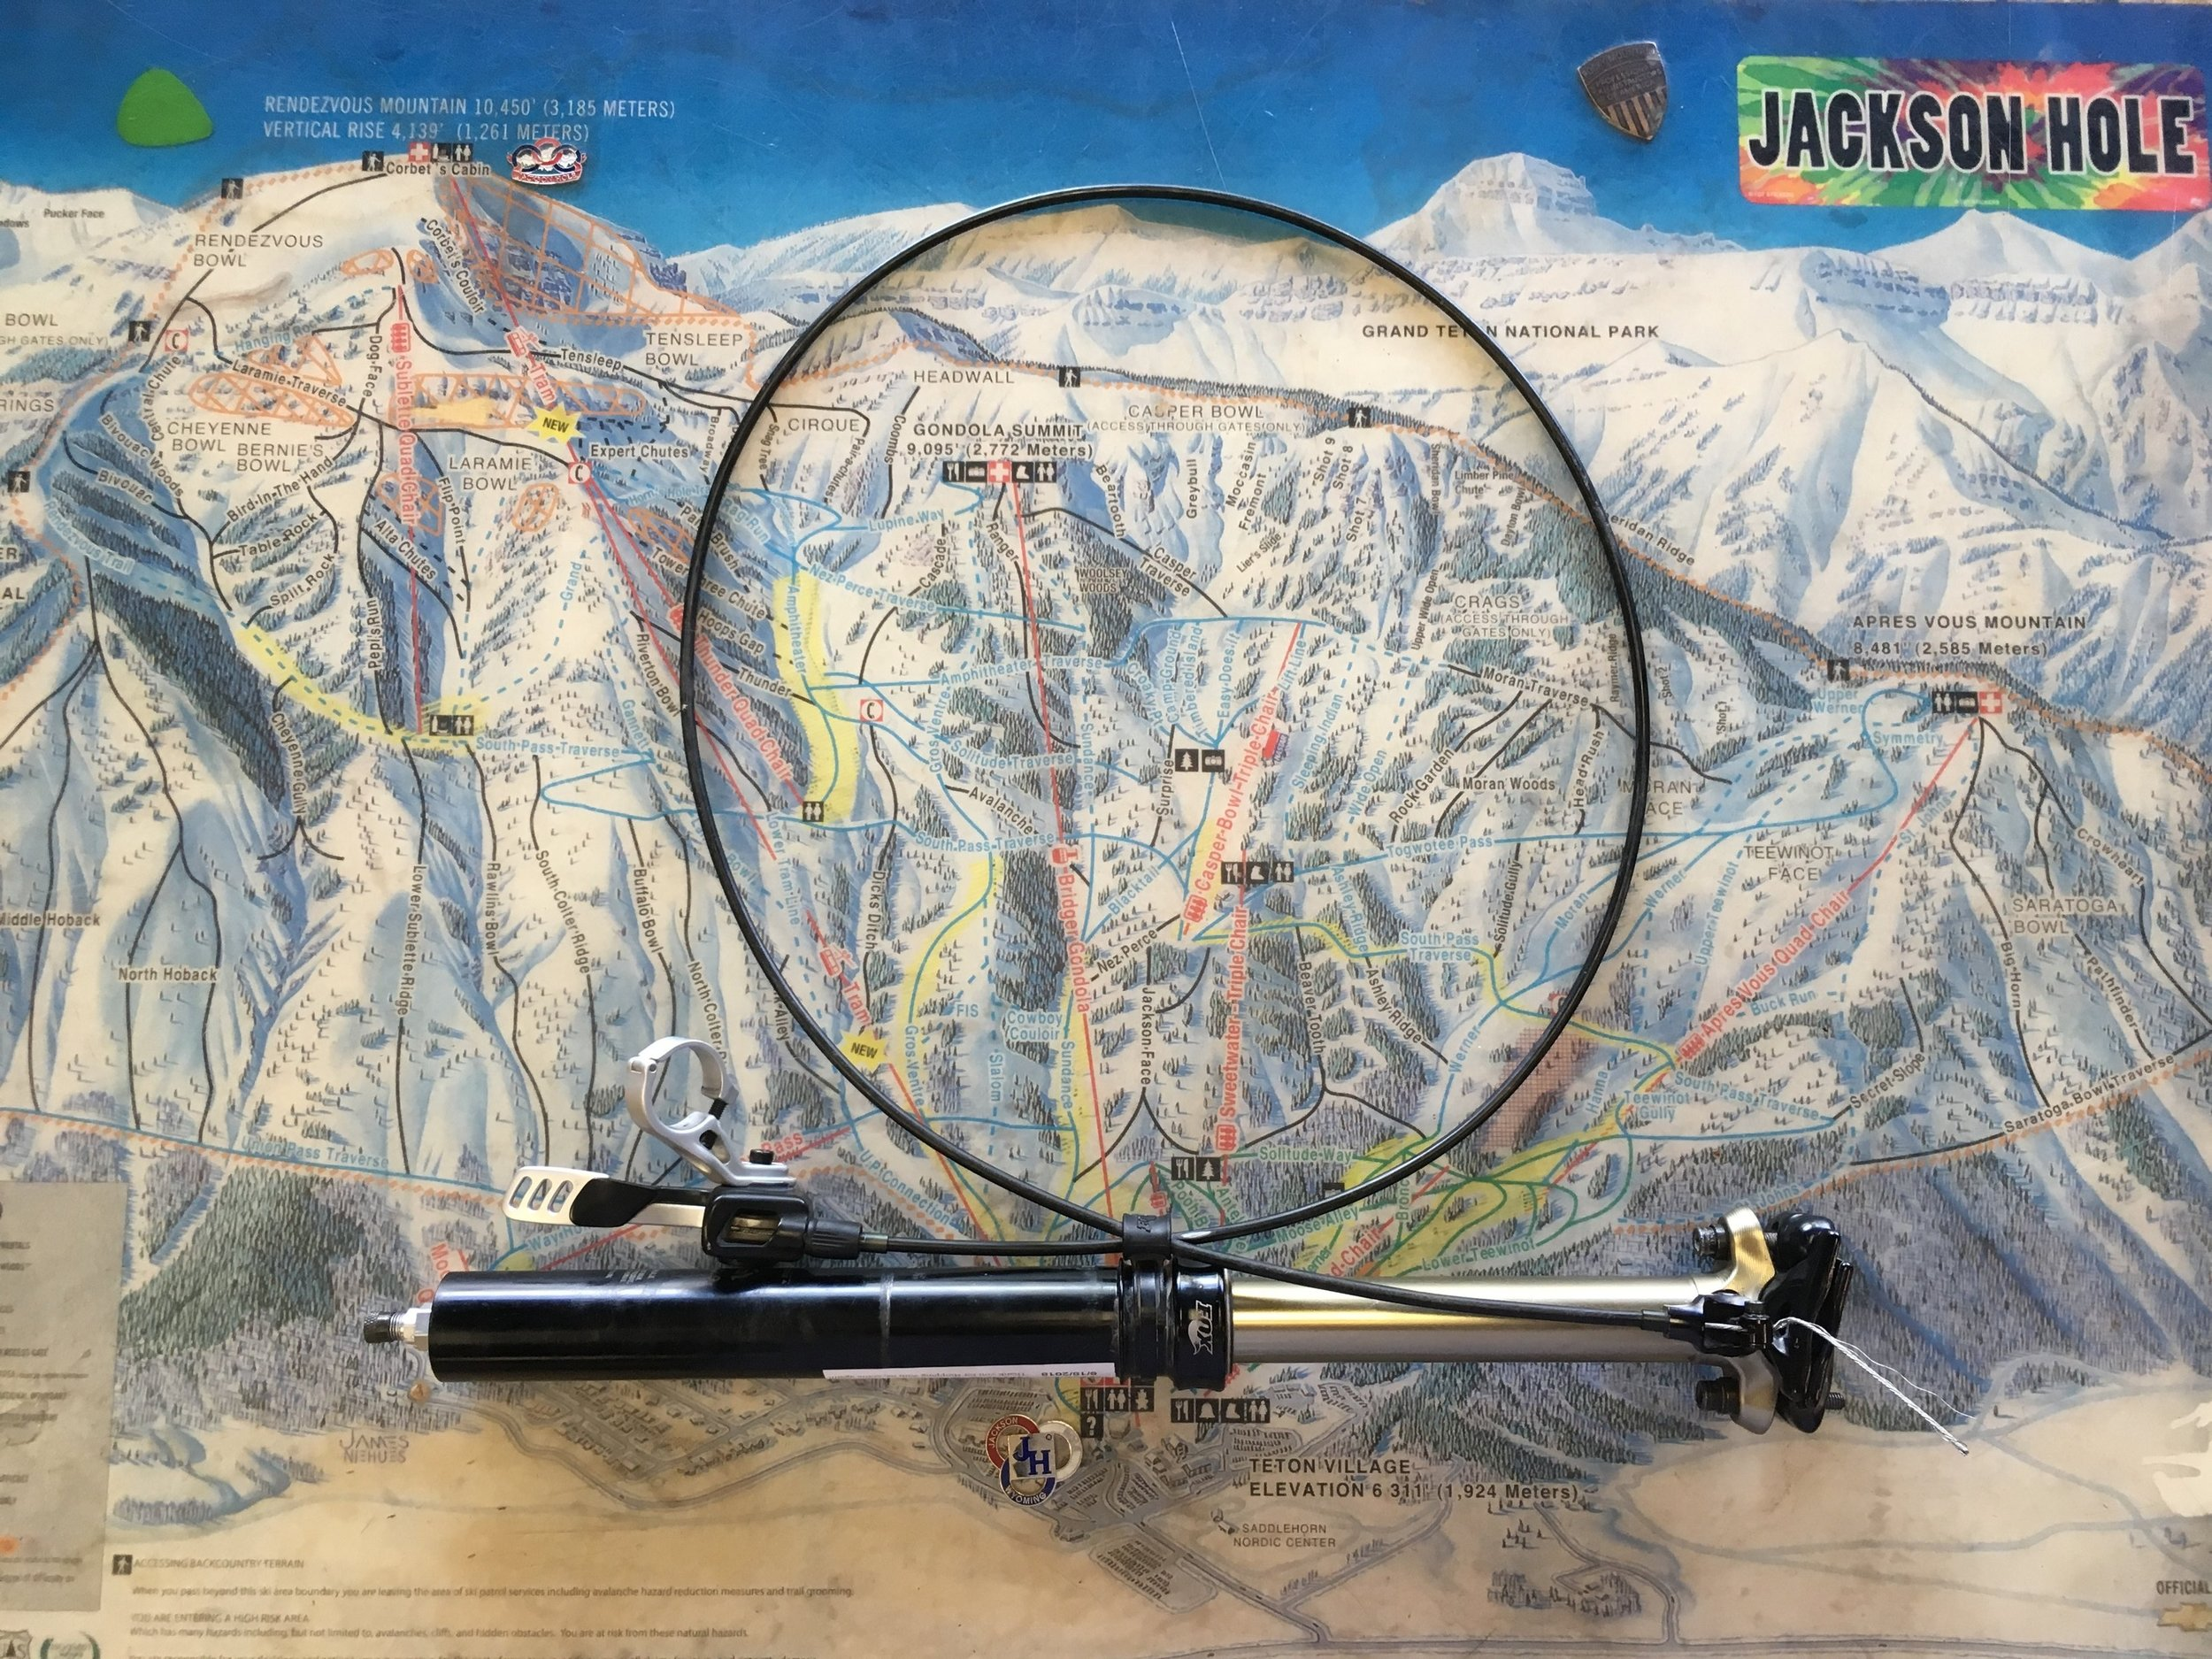 Like going up and down? Here's the Fox D.O.S.S dropper post for ya. Featuring 5in/125mm of travel you'll be able conquer anything the trail throws at you. Retail for the dropper post is around $400 but we can get you riding for $149! The diameter is 30.9.